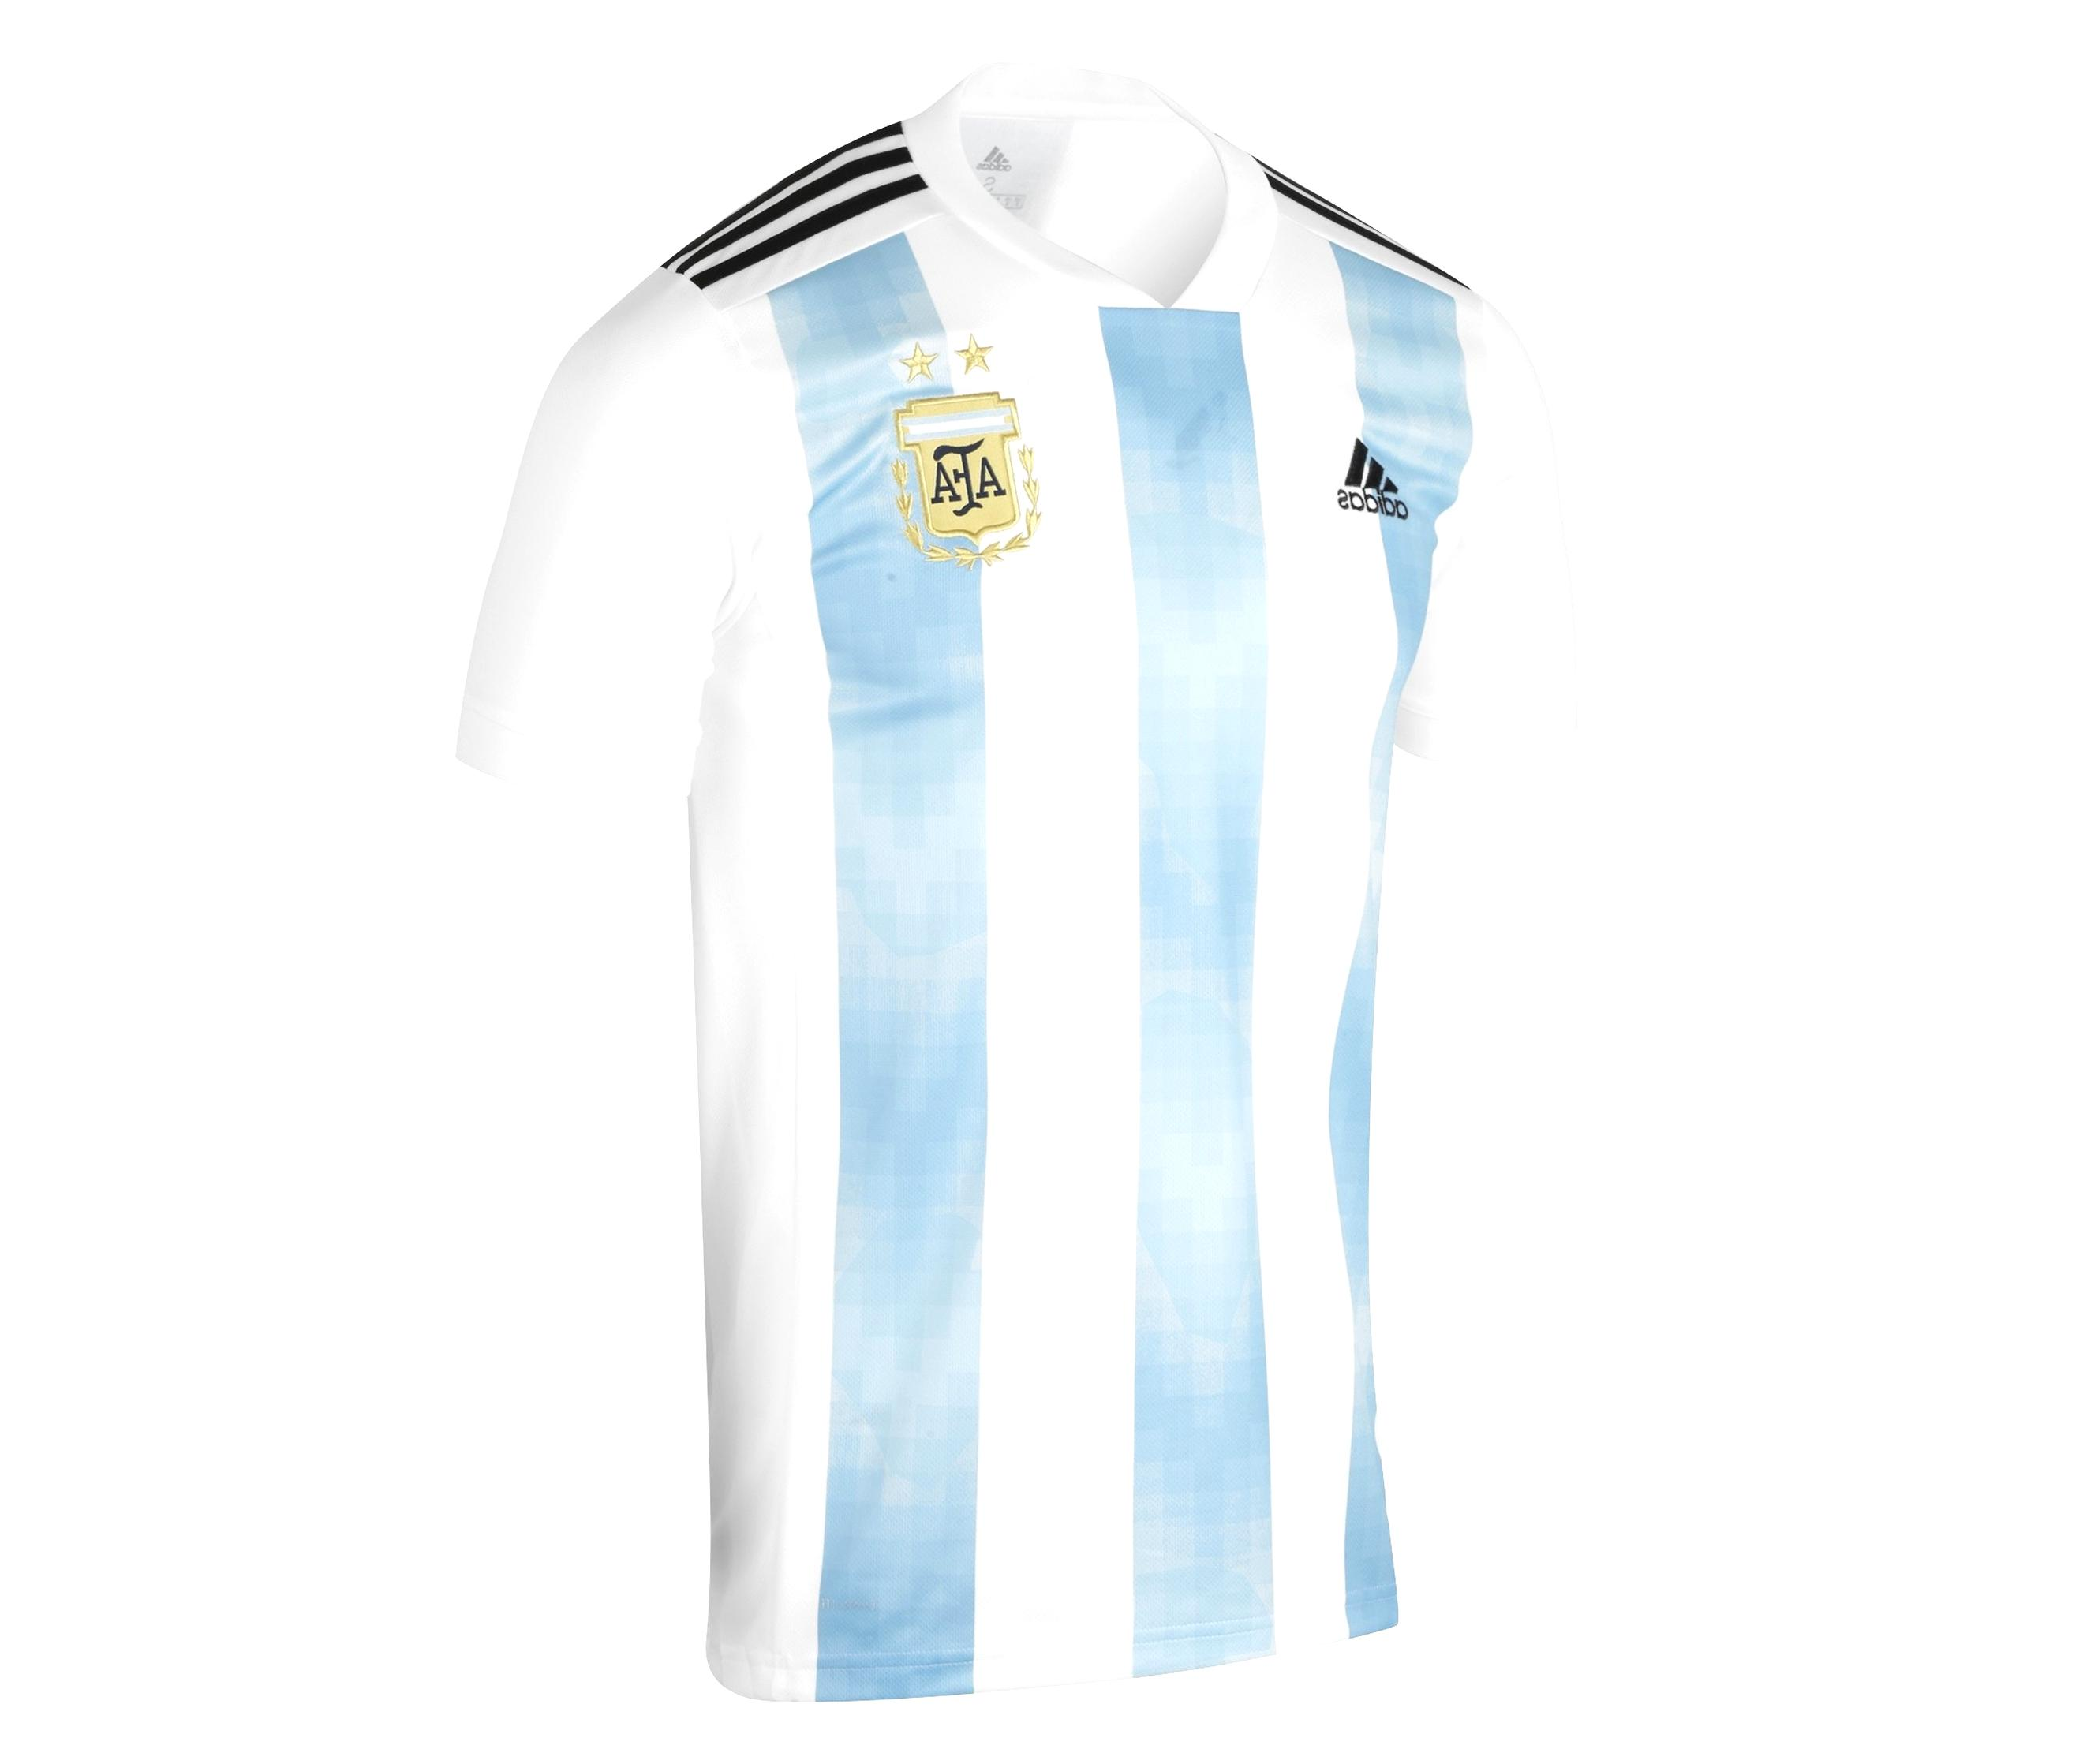 maillot argentin d'occasion